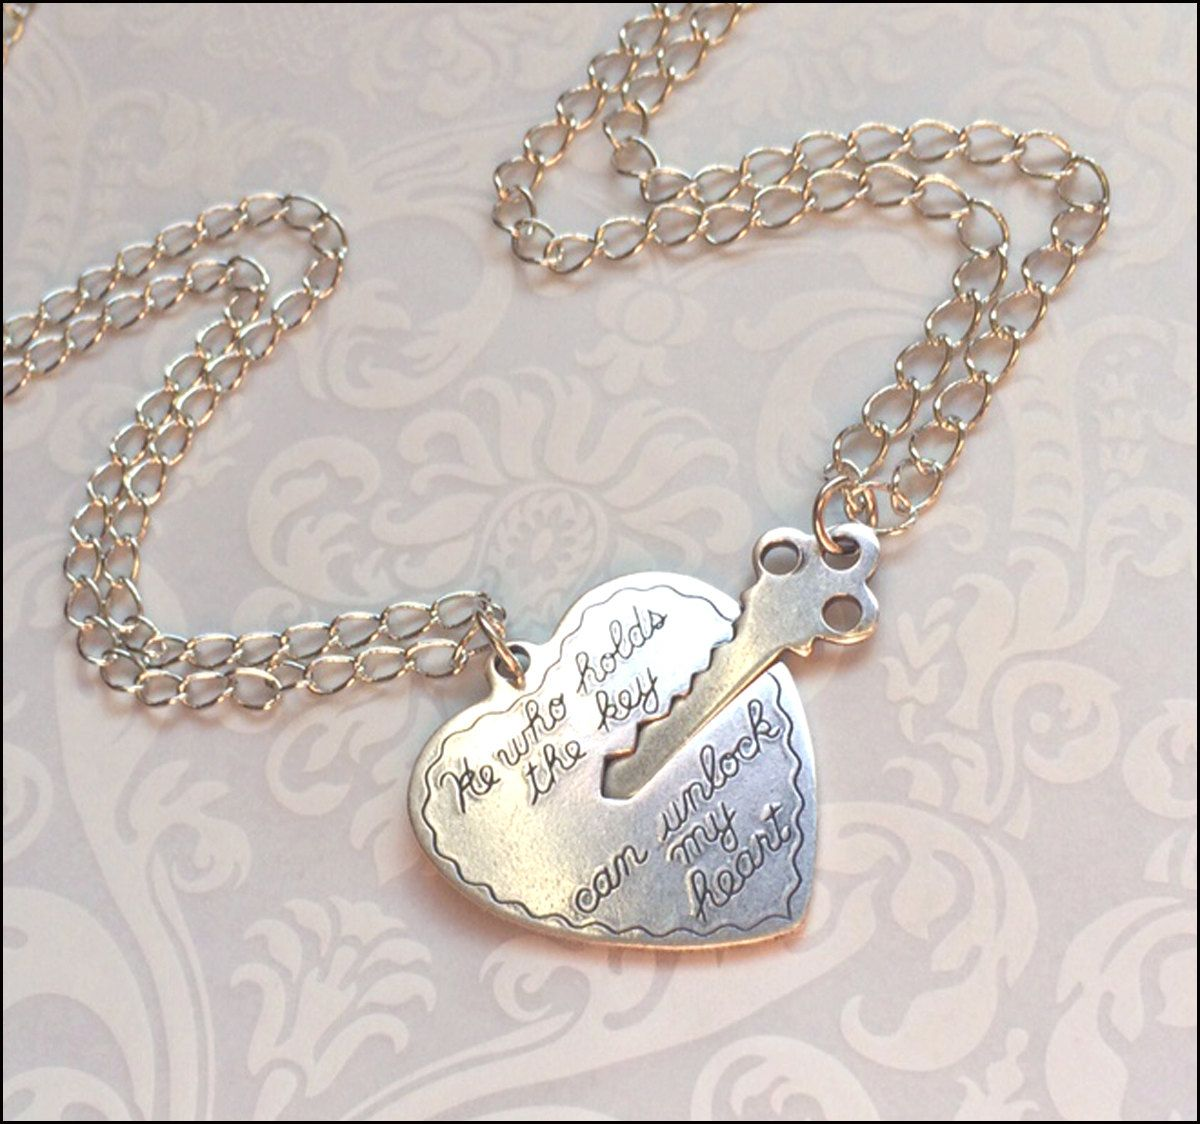 21ad325cf3 Key To My Heart Necklace~Couples Necklace, Boyfriend/Girlfriend Jewelry, He  Who Holds the Key NECKLACE SET Beautiful Chain His/Hers Couple